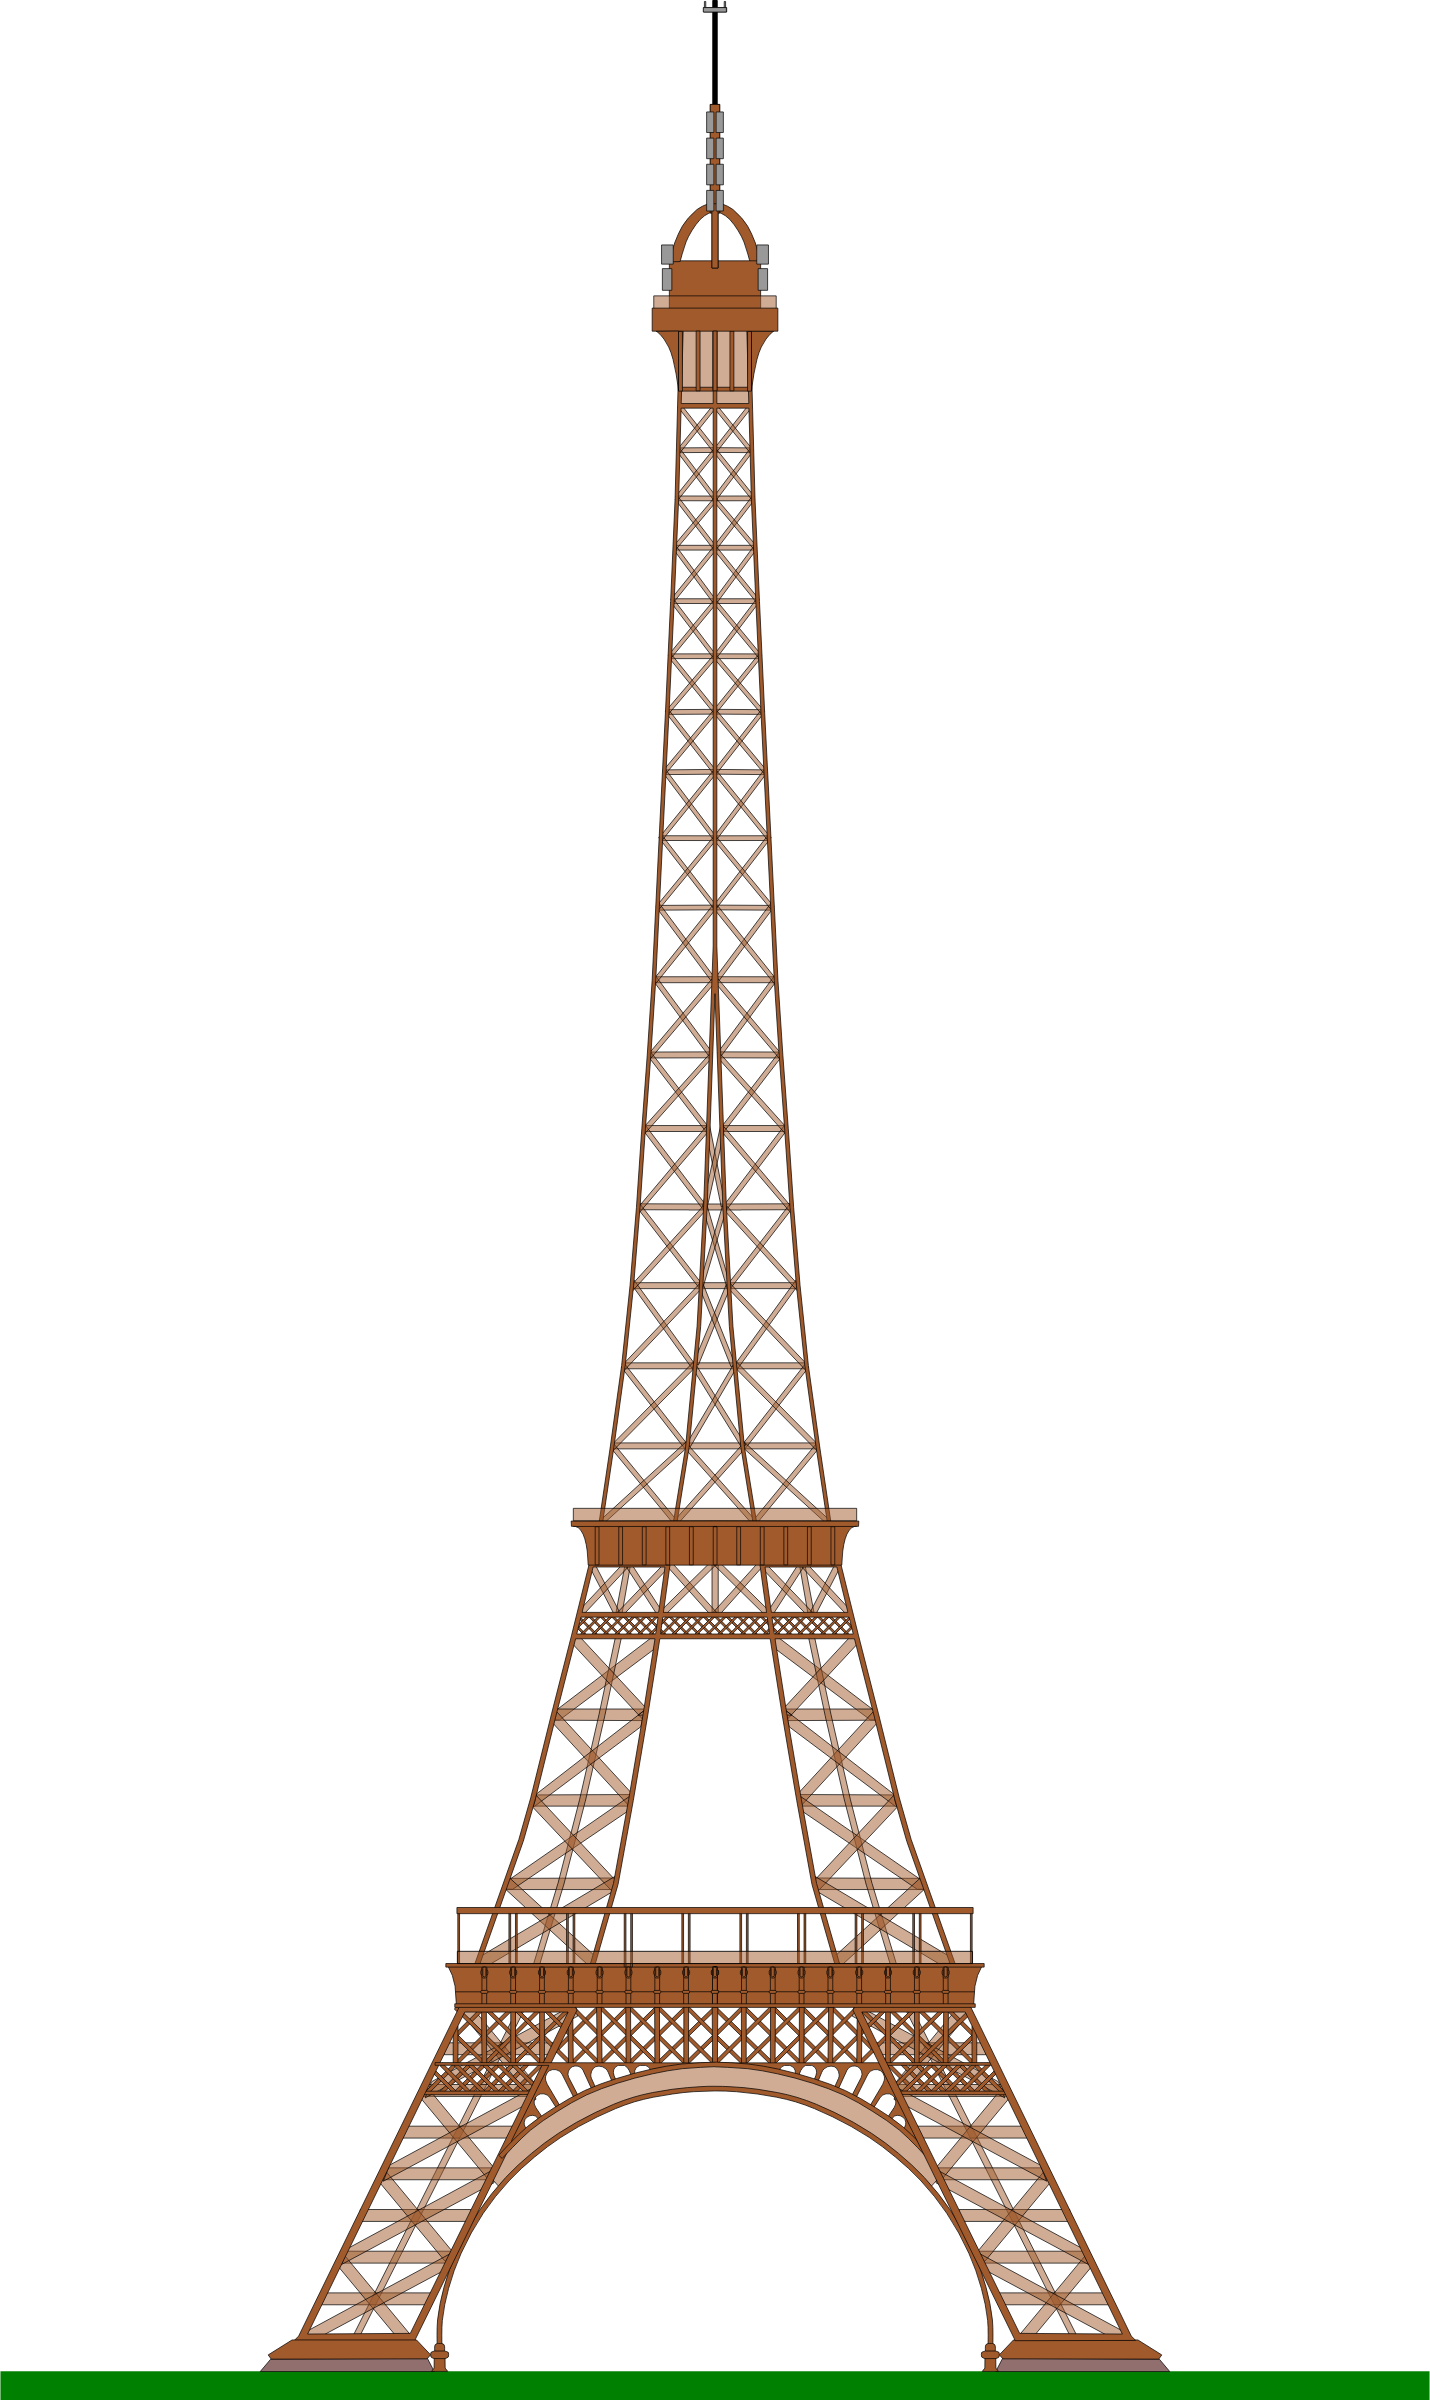 Eiffel tower with crown clipart clip art royalty free download Eiffel Tower (Paris) by @ajaborsk, A side view of the famous Paris ... clip art royalty free download